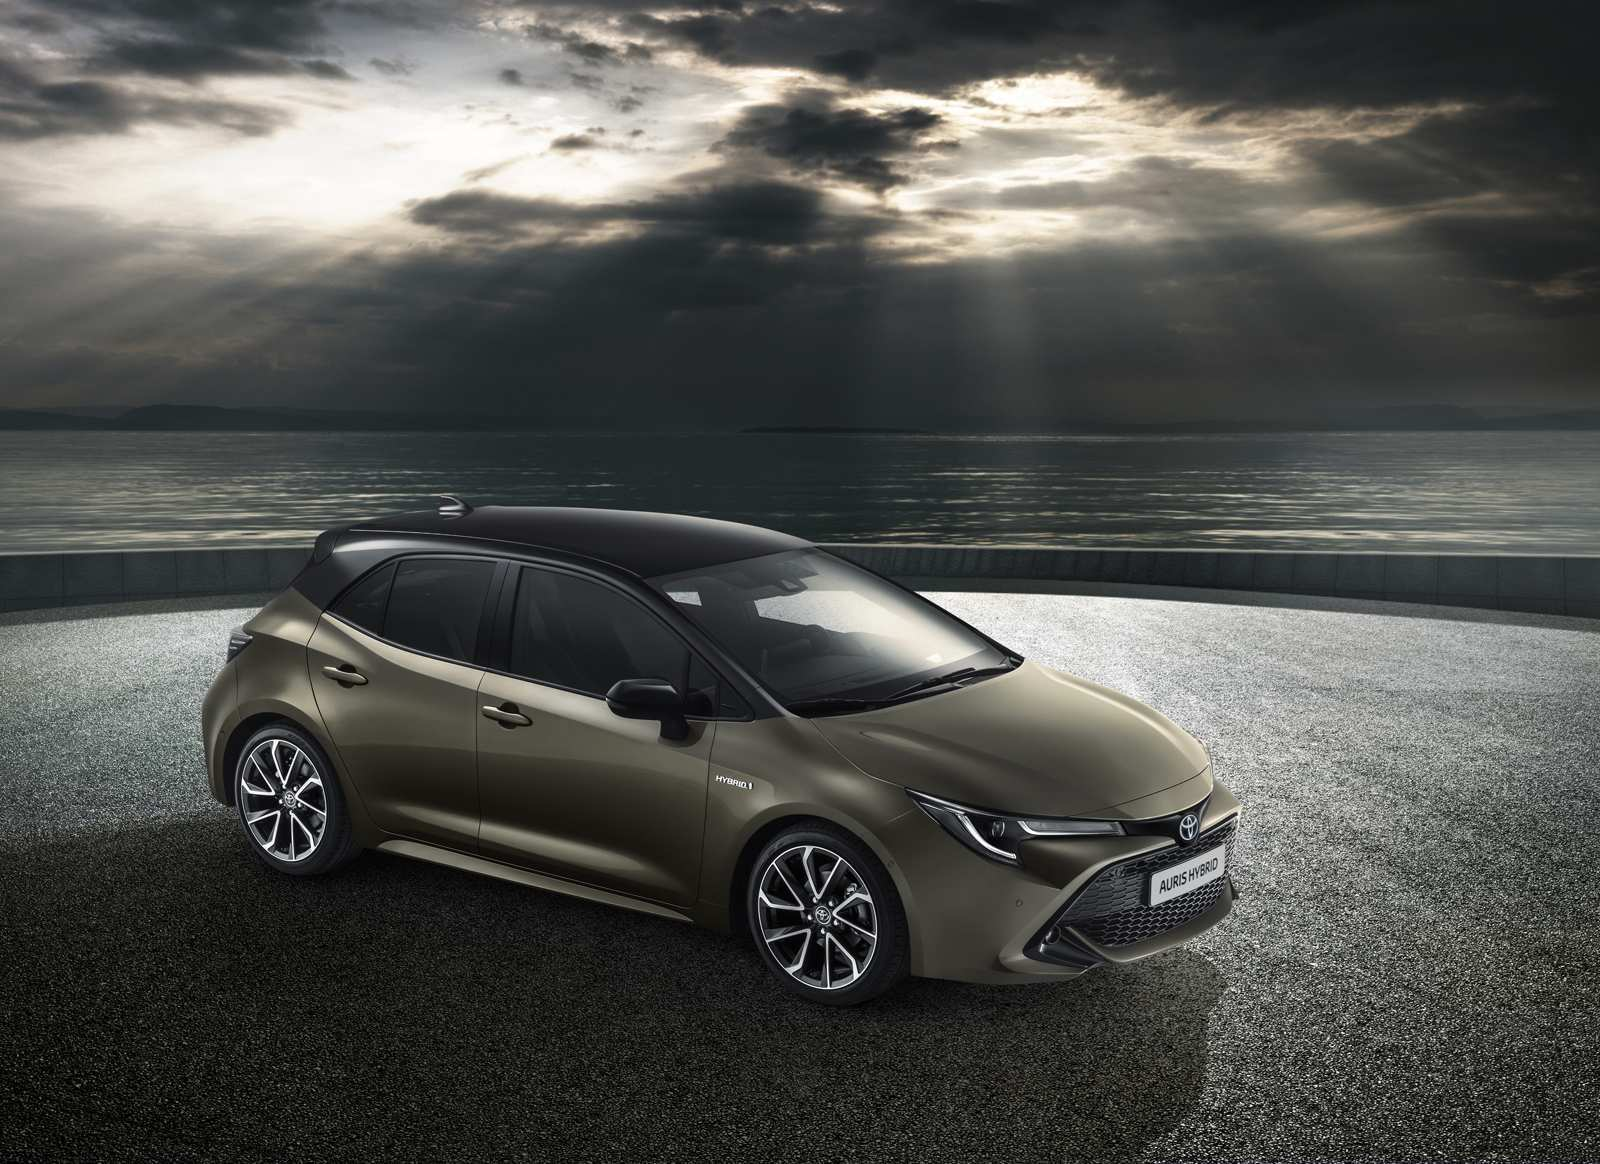 73 Great Hatchback Toyota 2020 Exterior and Interior with Hatchback Toyota 2020